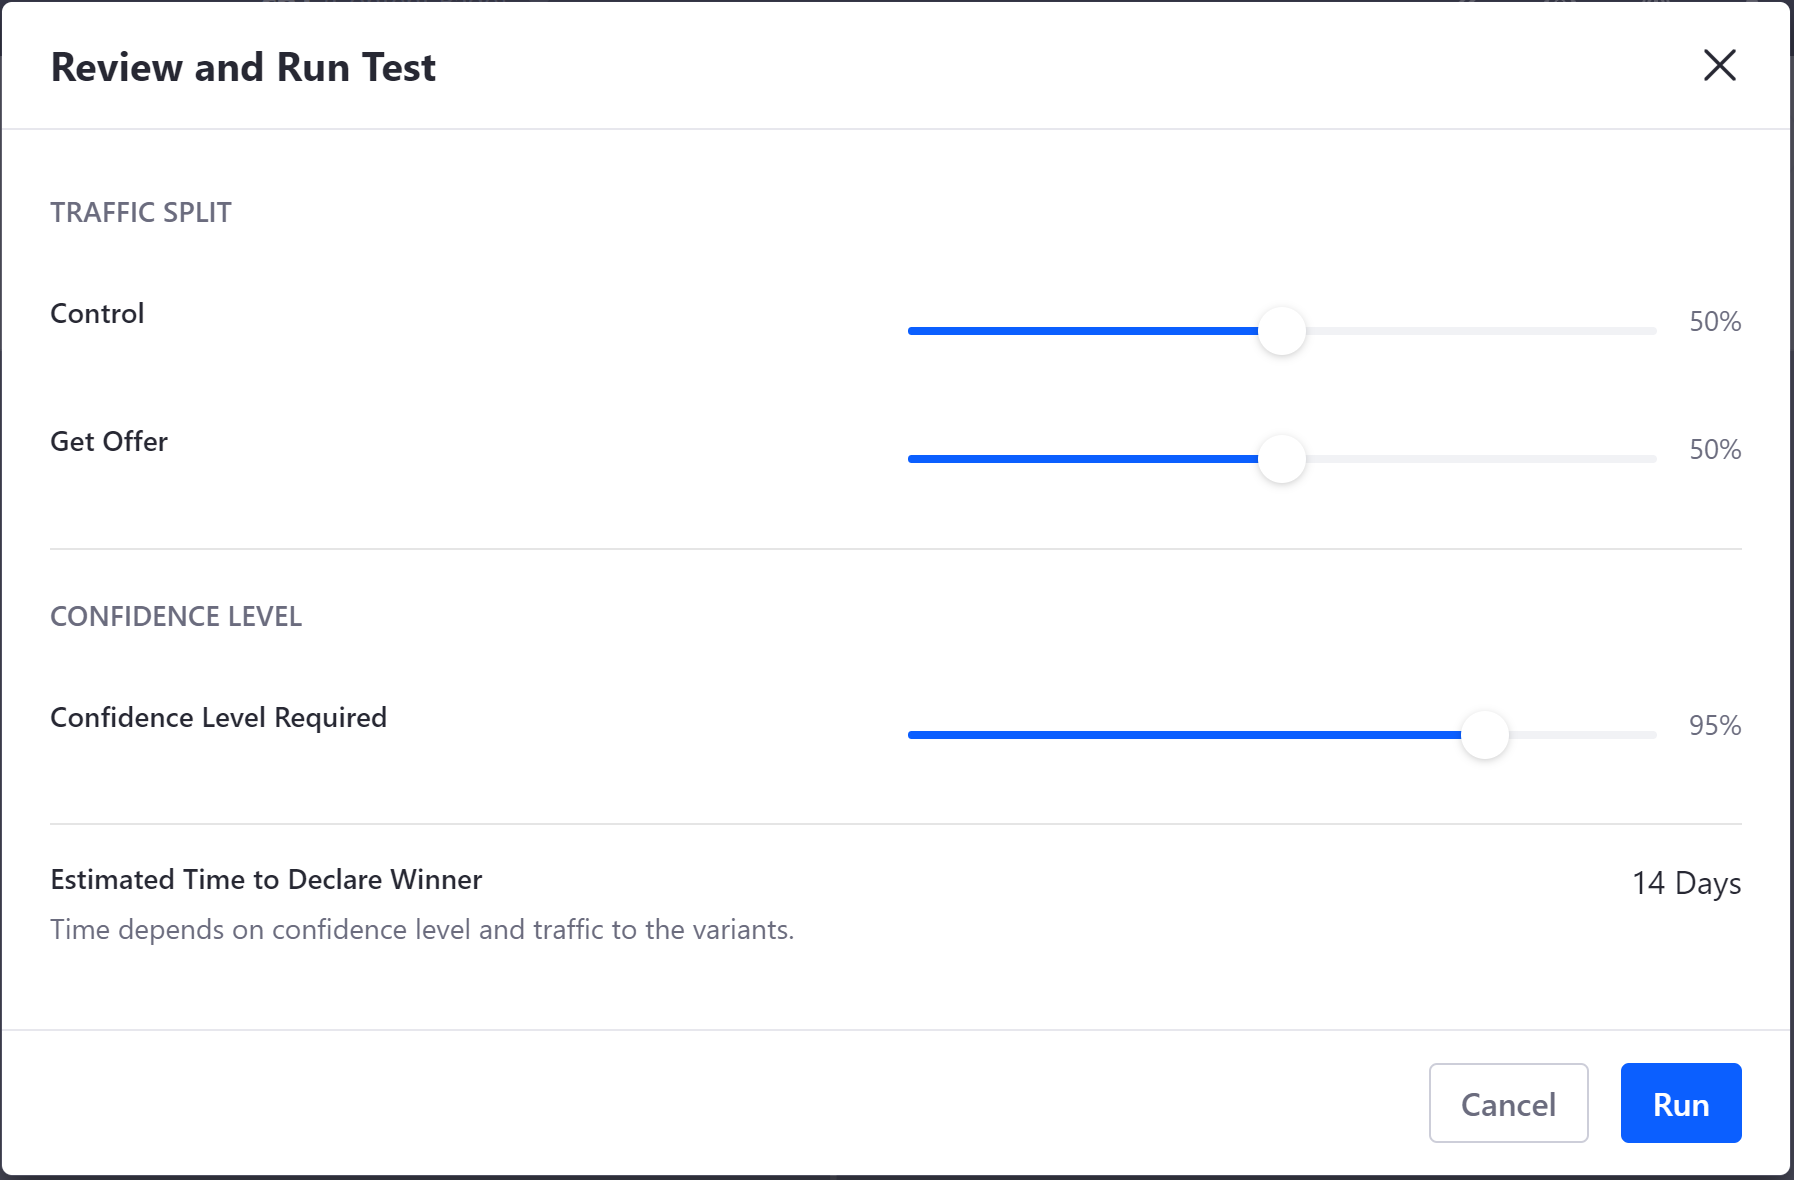 Figure 1: Configure the final parameters of your A/B test before running it.